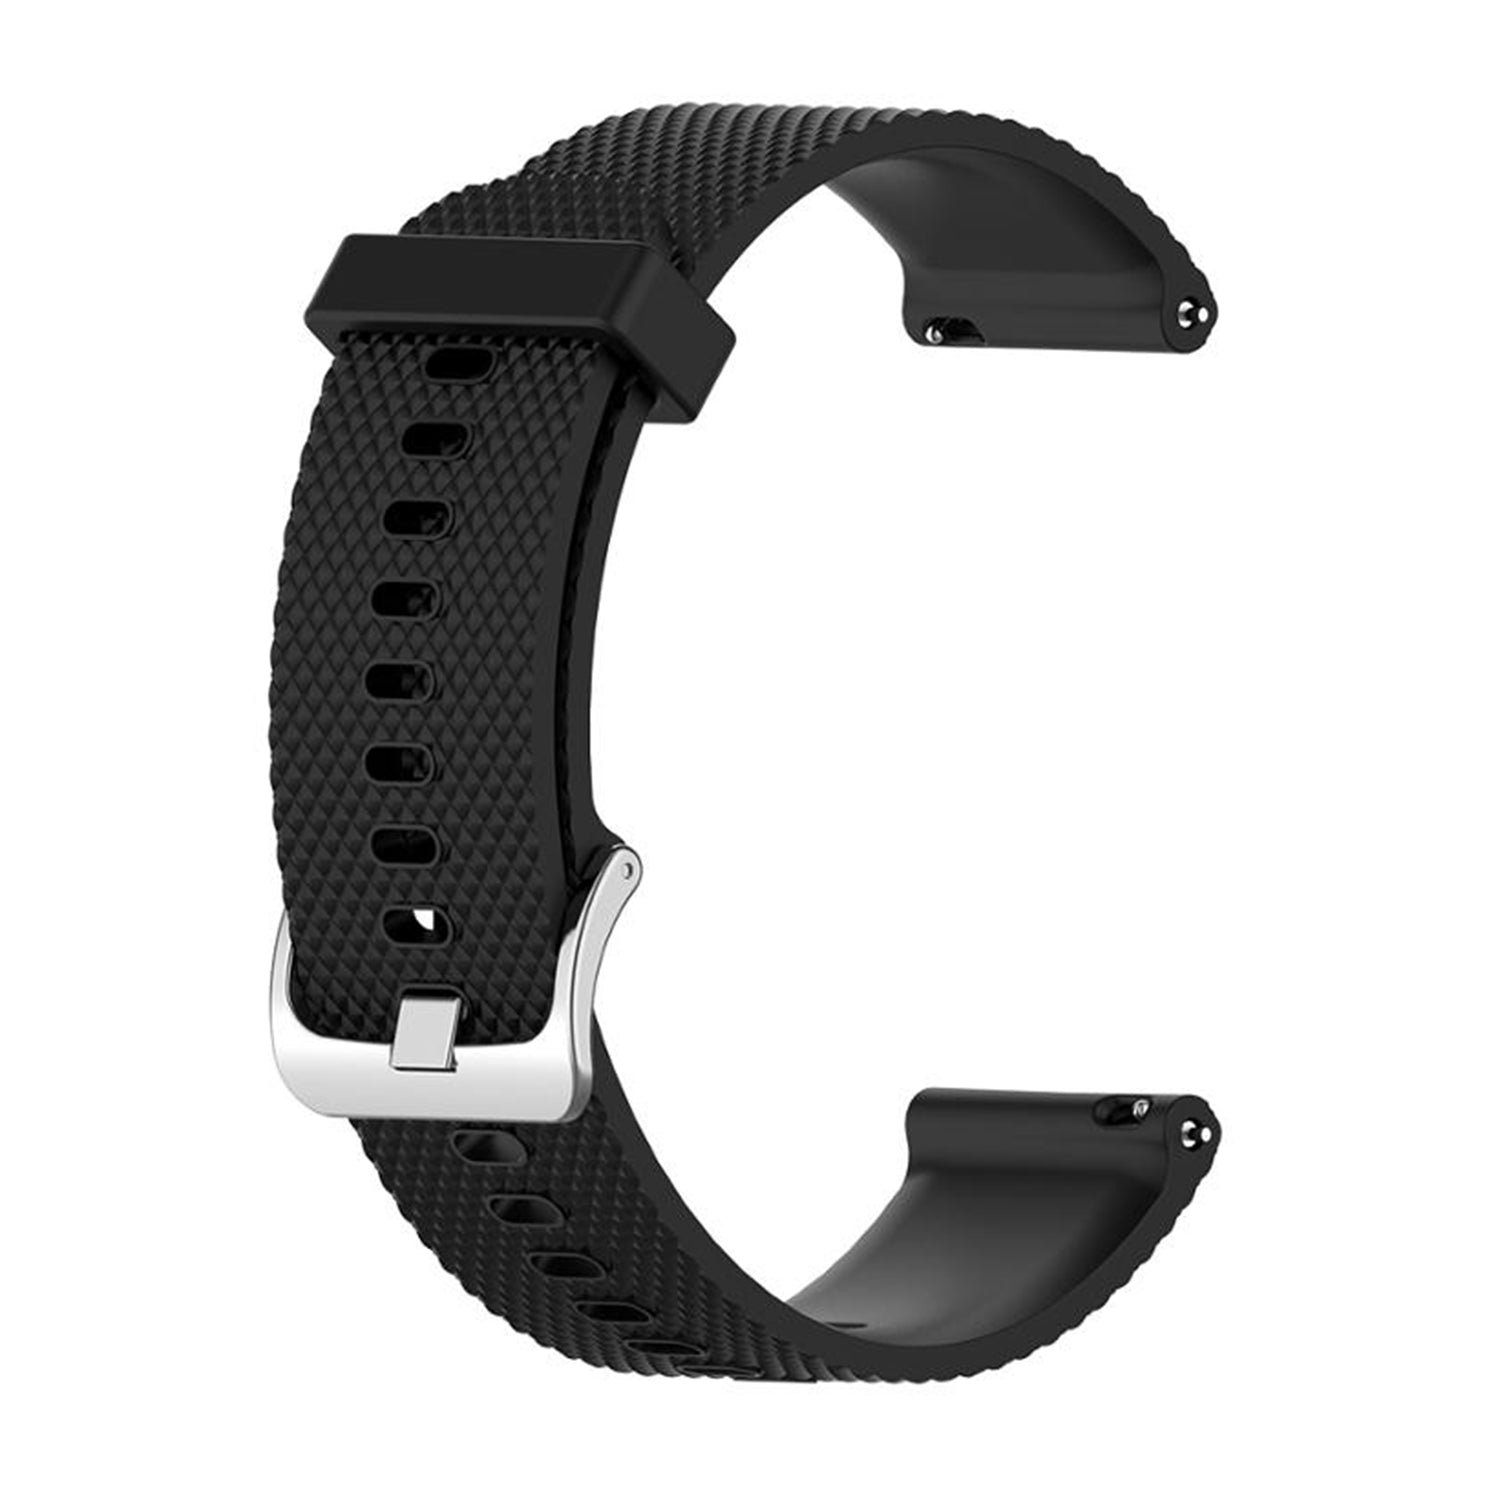 22mm Silicone Band Black - Samsung, Garmin